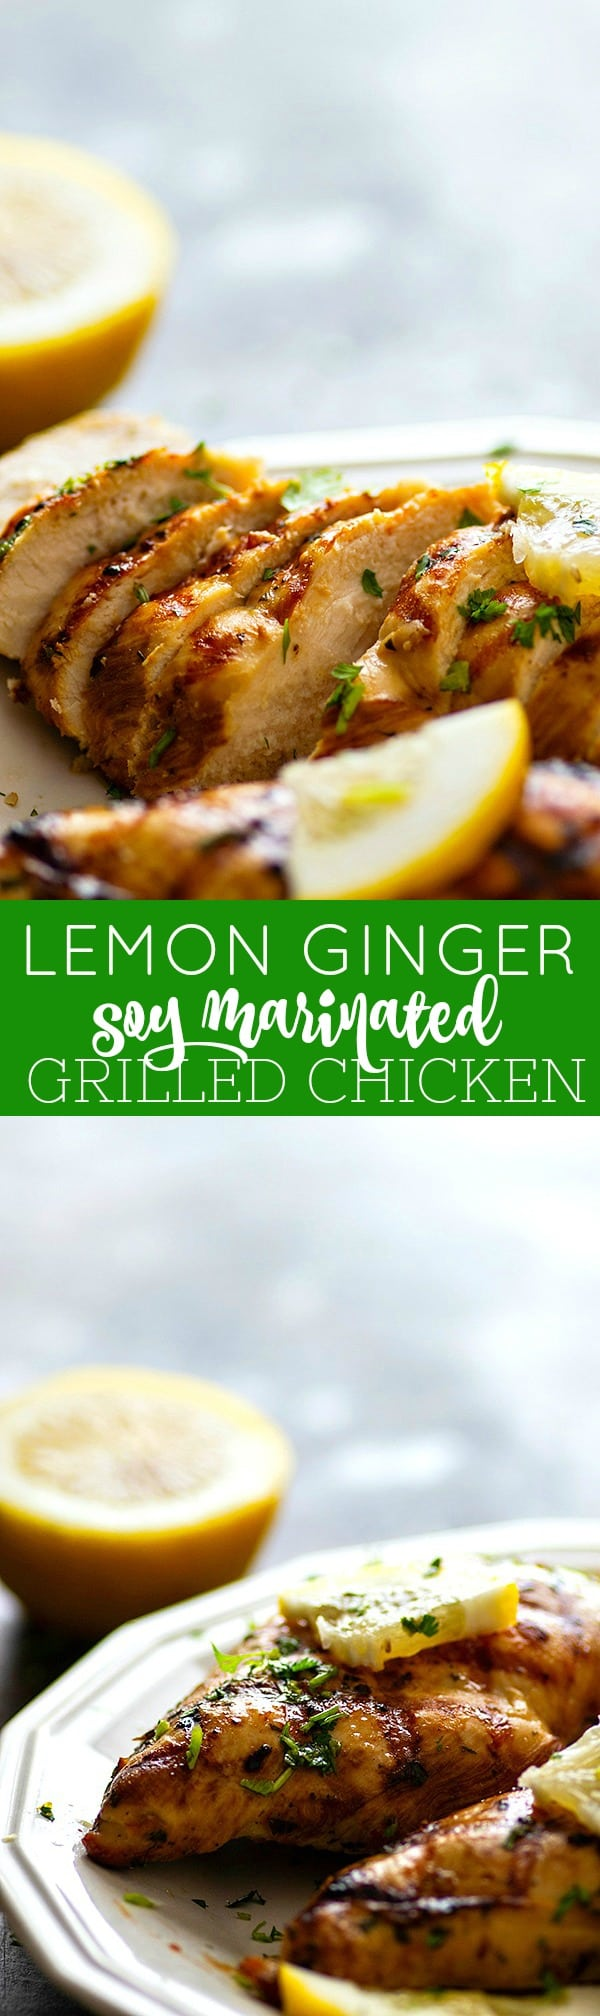 Marinated for hours in a flavorful lemon ginger soy sauce and then grilled to perfection, this lemon ginger soy marinated grilled chicken is SO insanely juicy it'll quickly become a grill favorite!